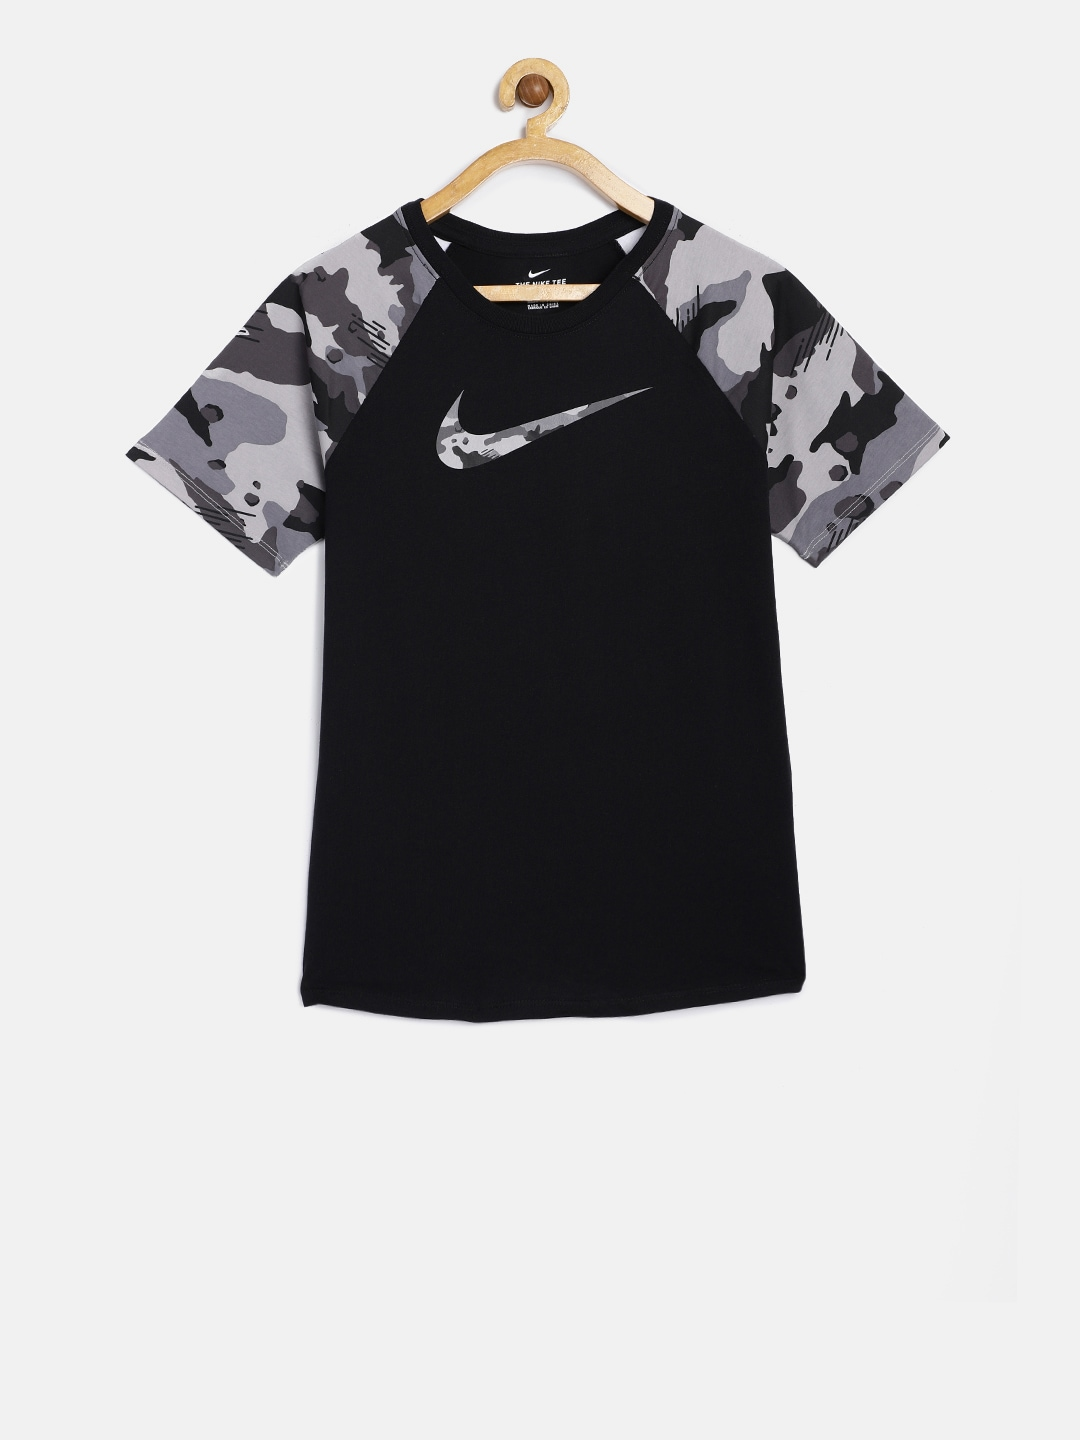 40c70160c6f Camouflage Tshirts - Buy Camouflage Tshirts online in India